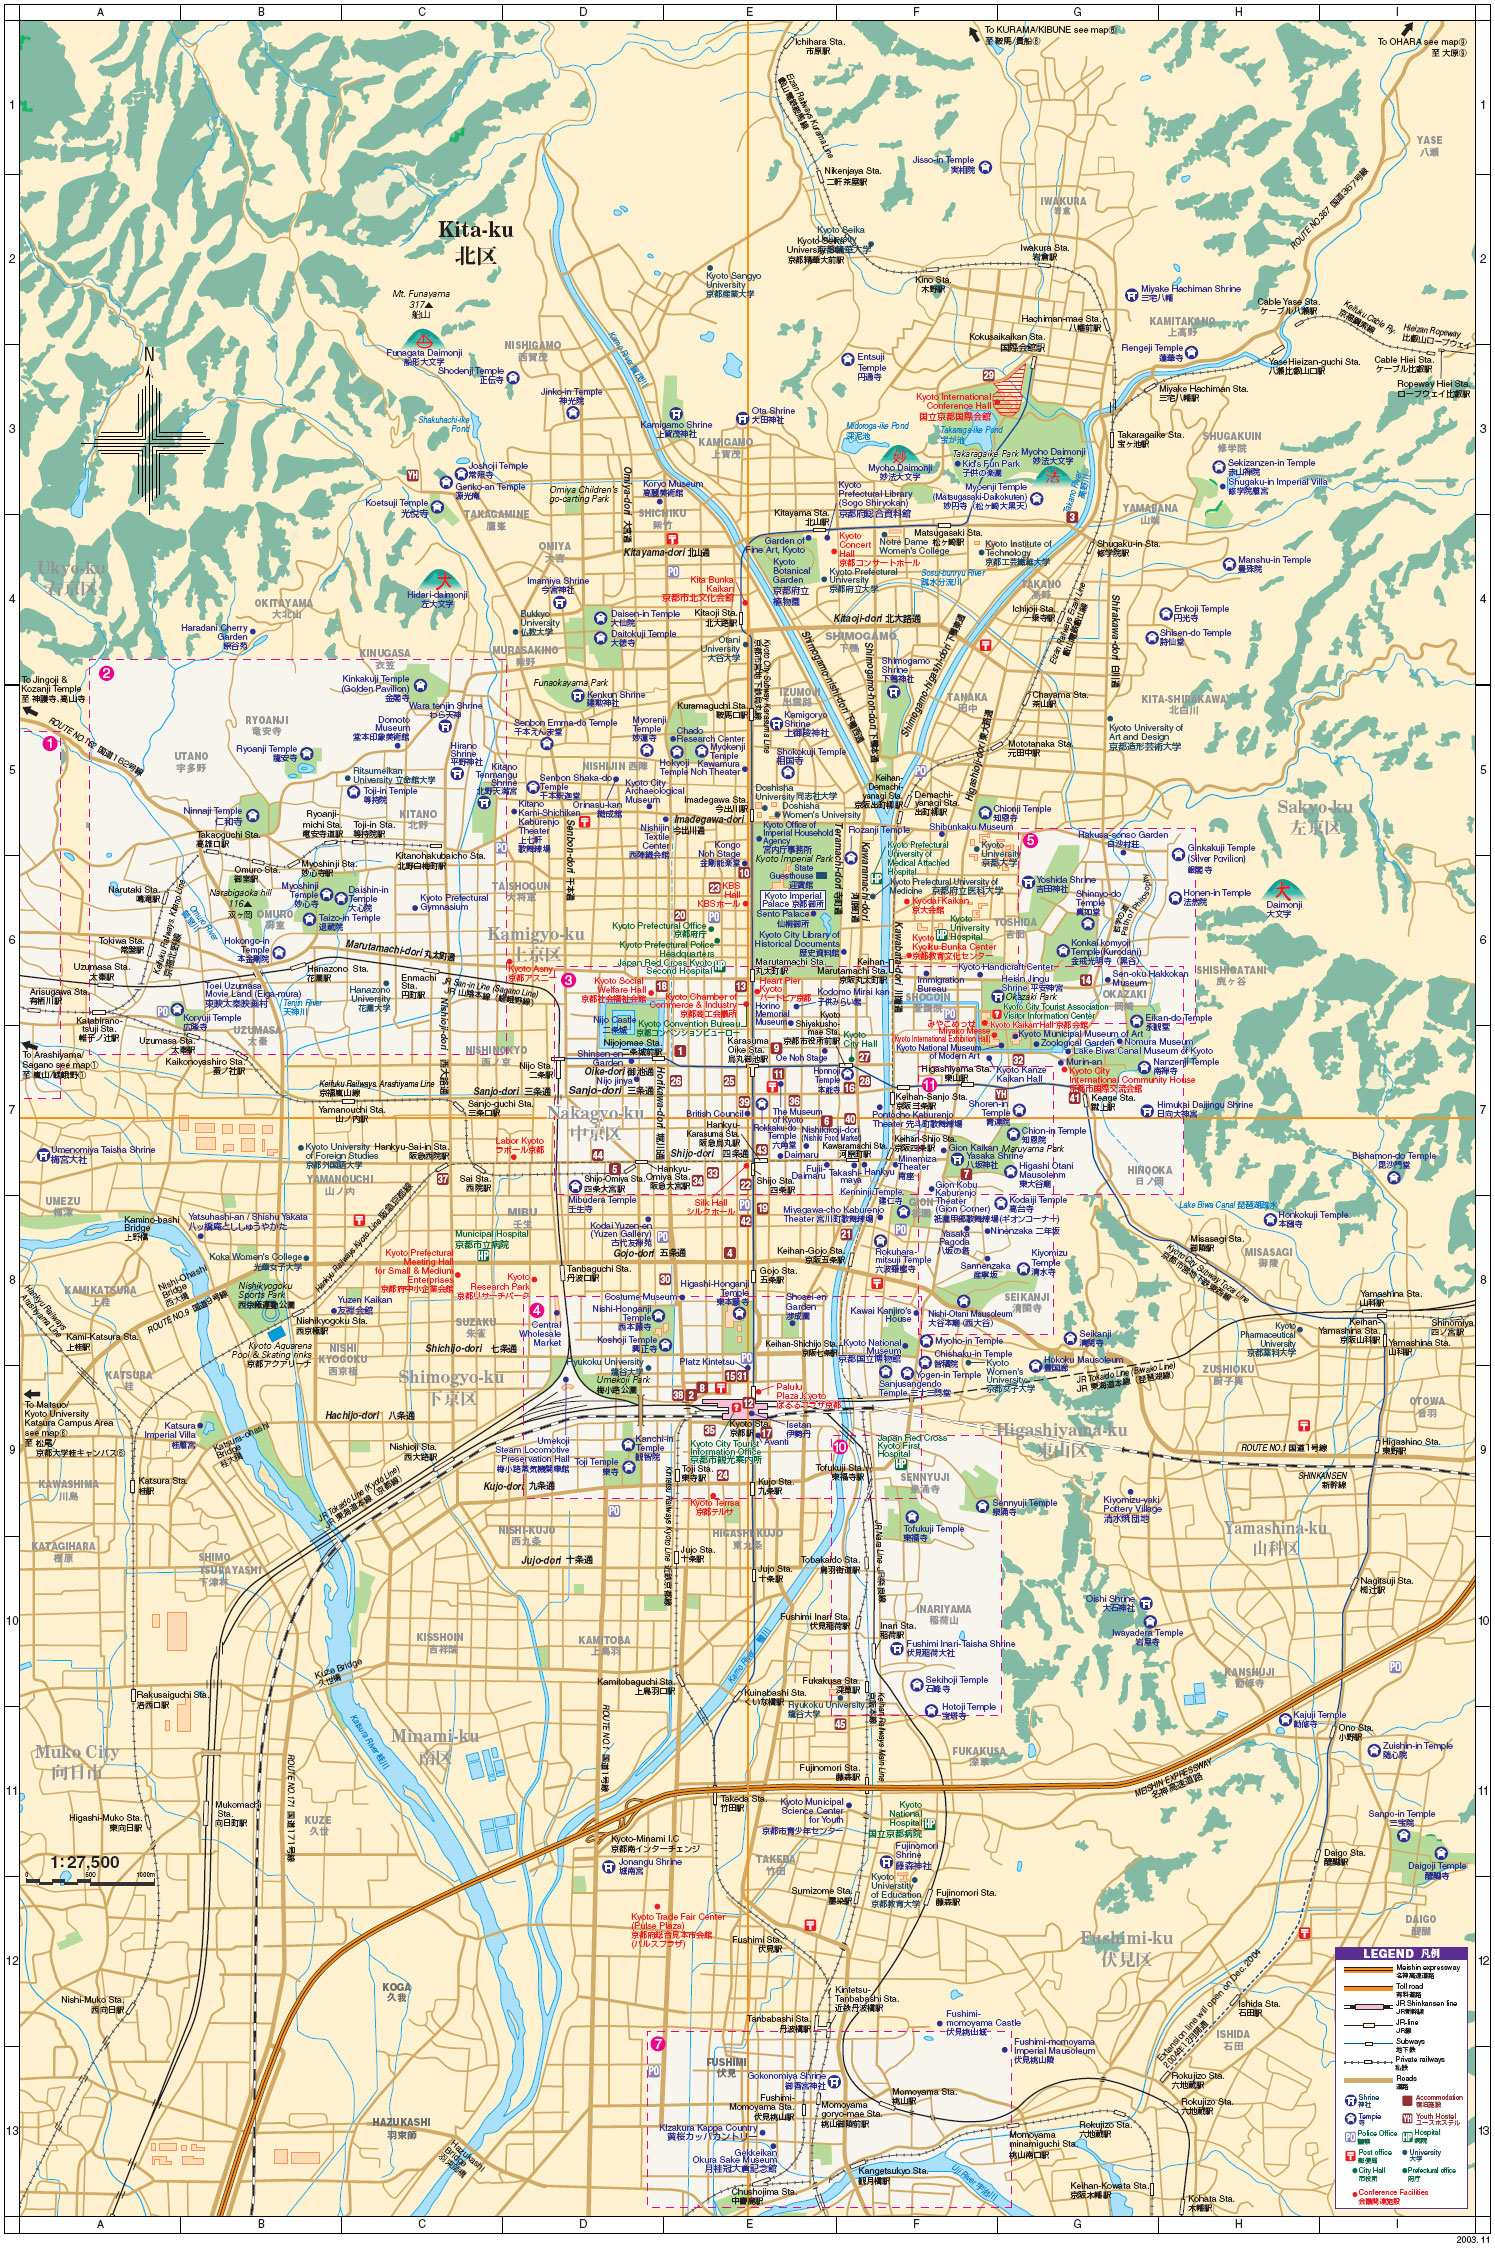 Subway Map Kyoto English.Large Kyoto Maps For Free Download And Print High Resolution And